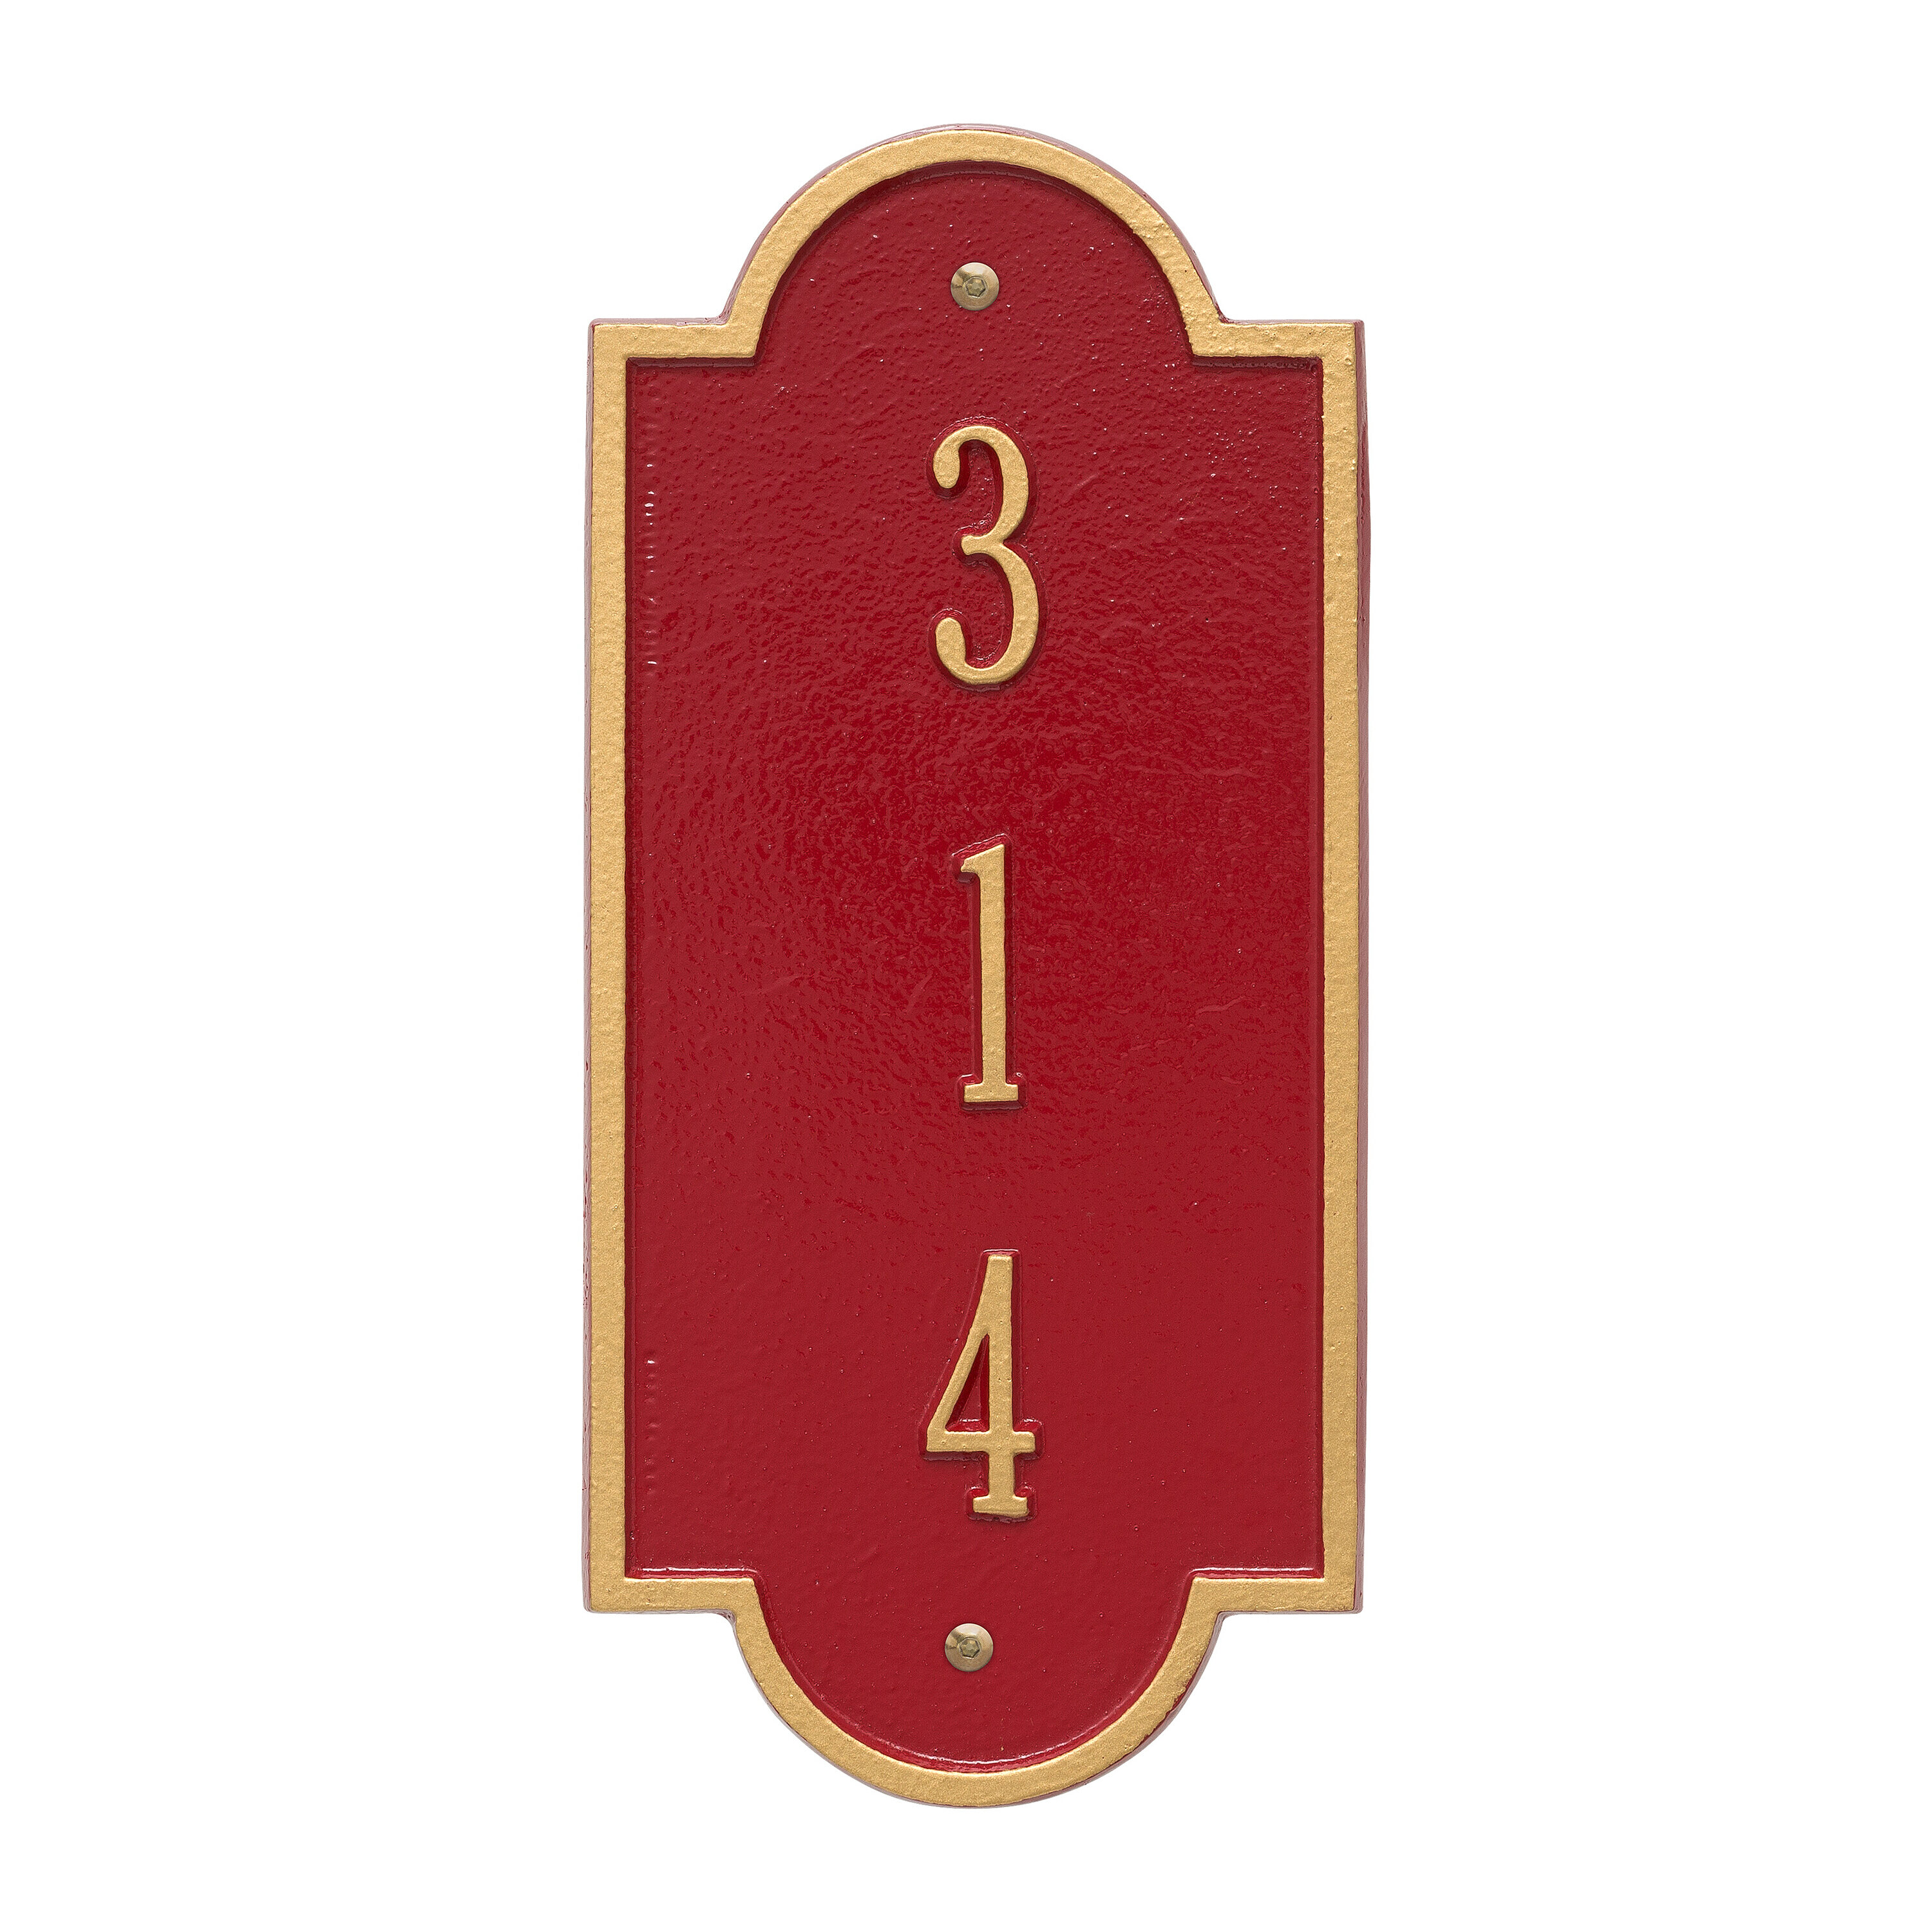 Whitehall Products Richmond Personalized Vertical Petite 3 Line Wall Address Plaque Reviews Wayfair